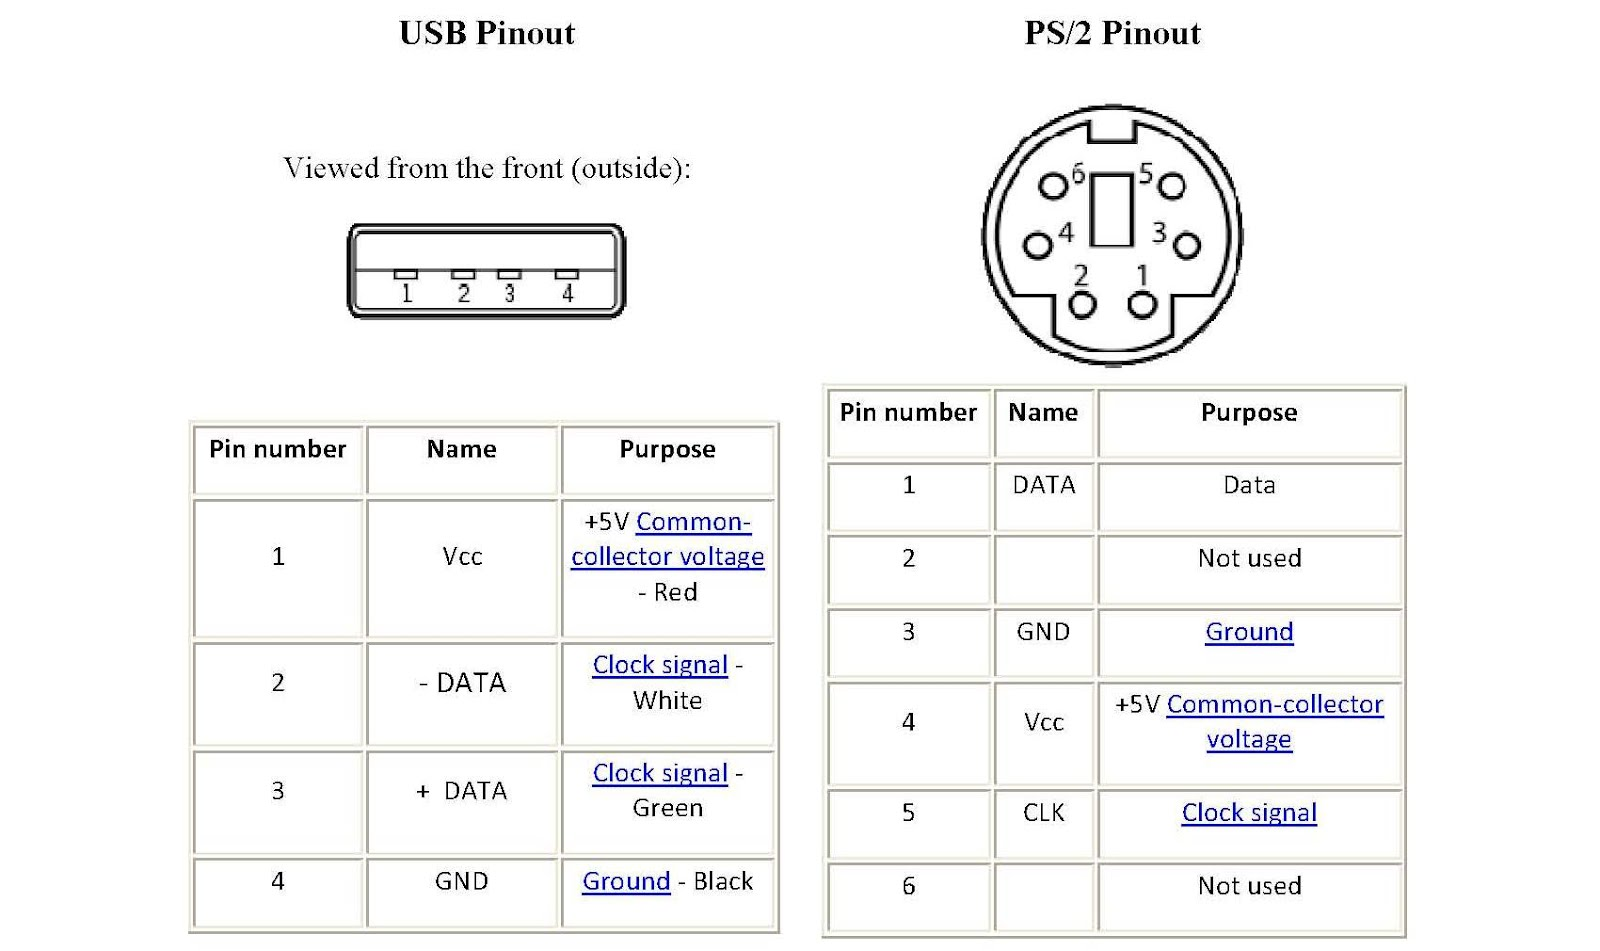 Ps/2 keyboard to usb | Tom's Hardware Forum